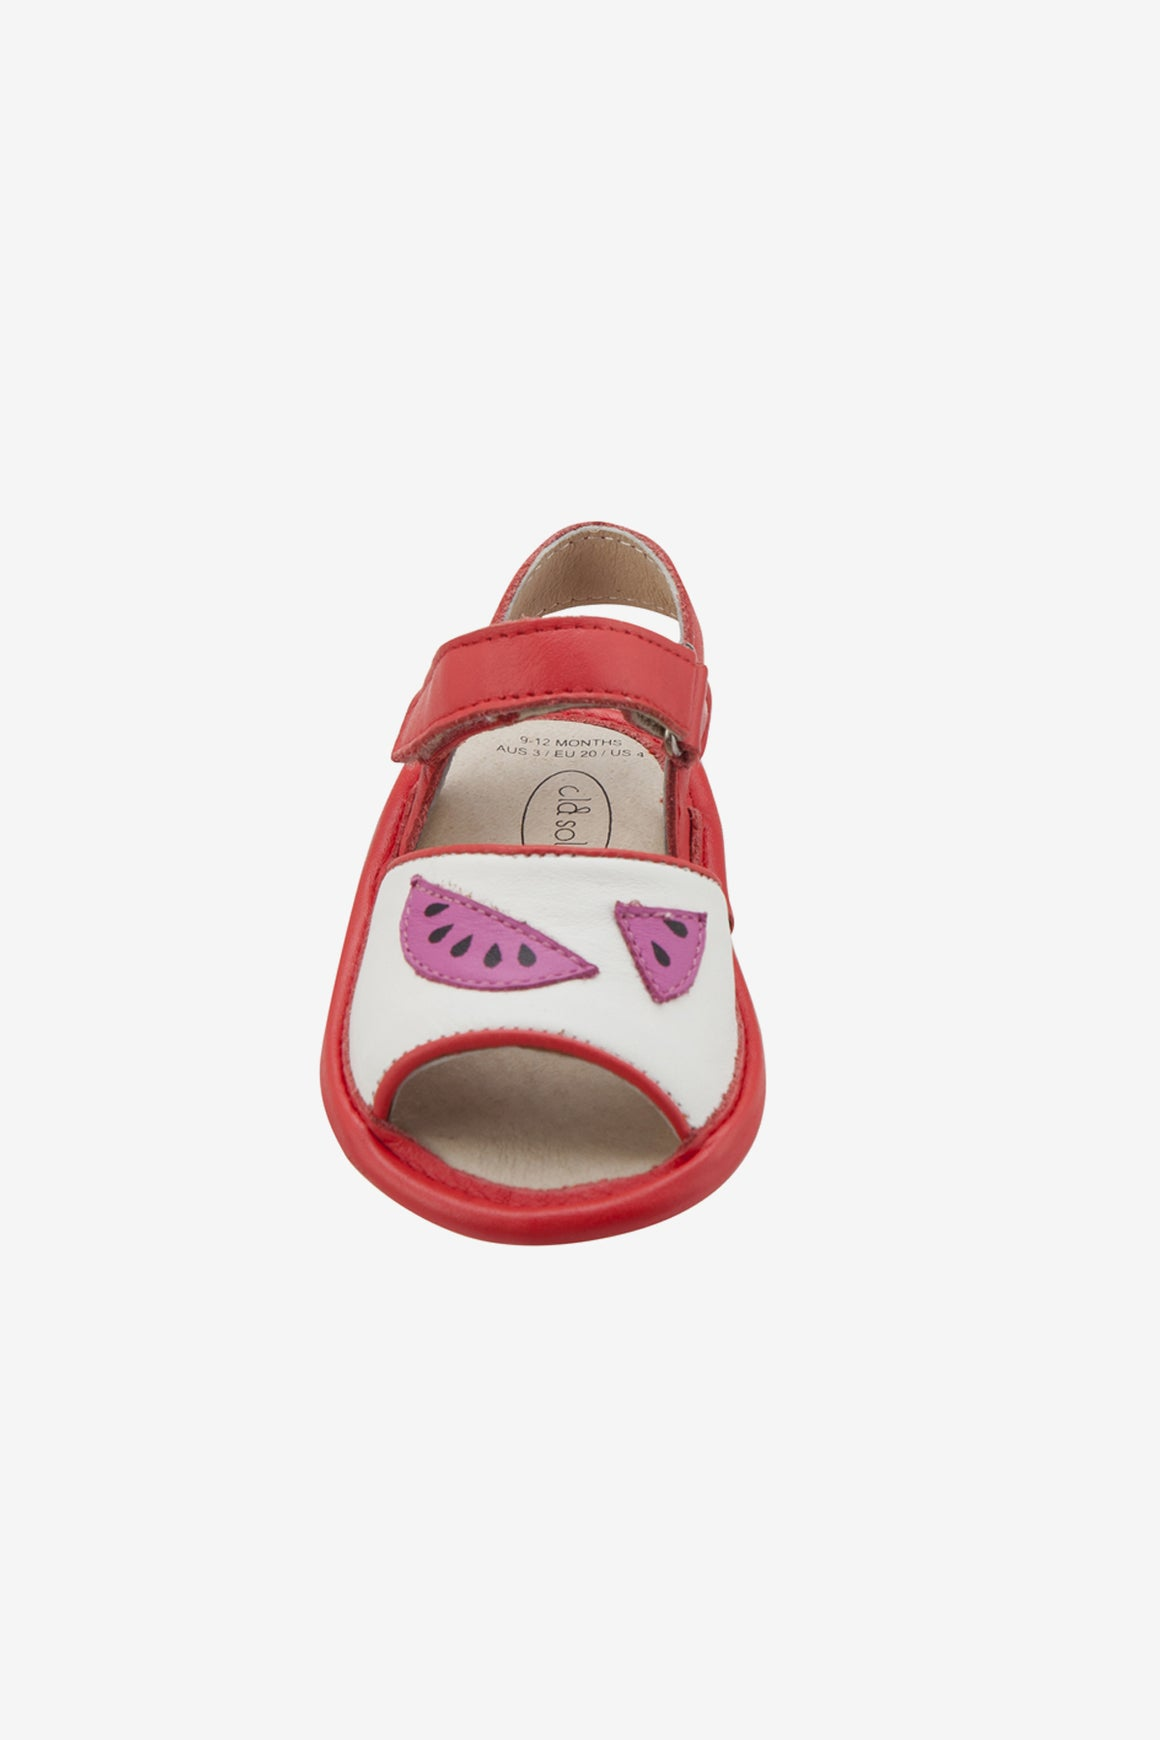 Old Soles Watermelon Bambini Sandal